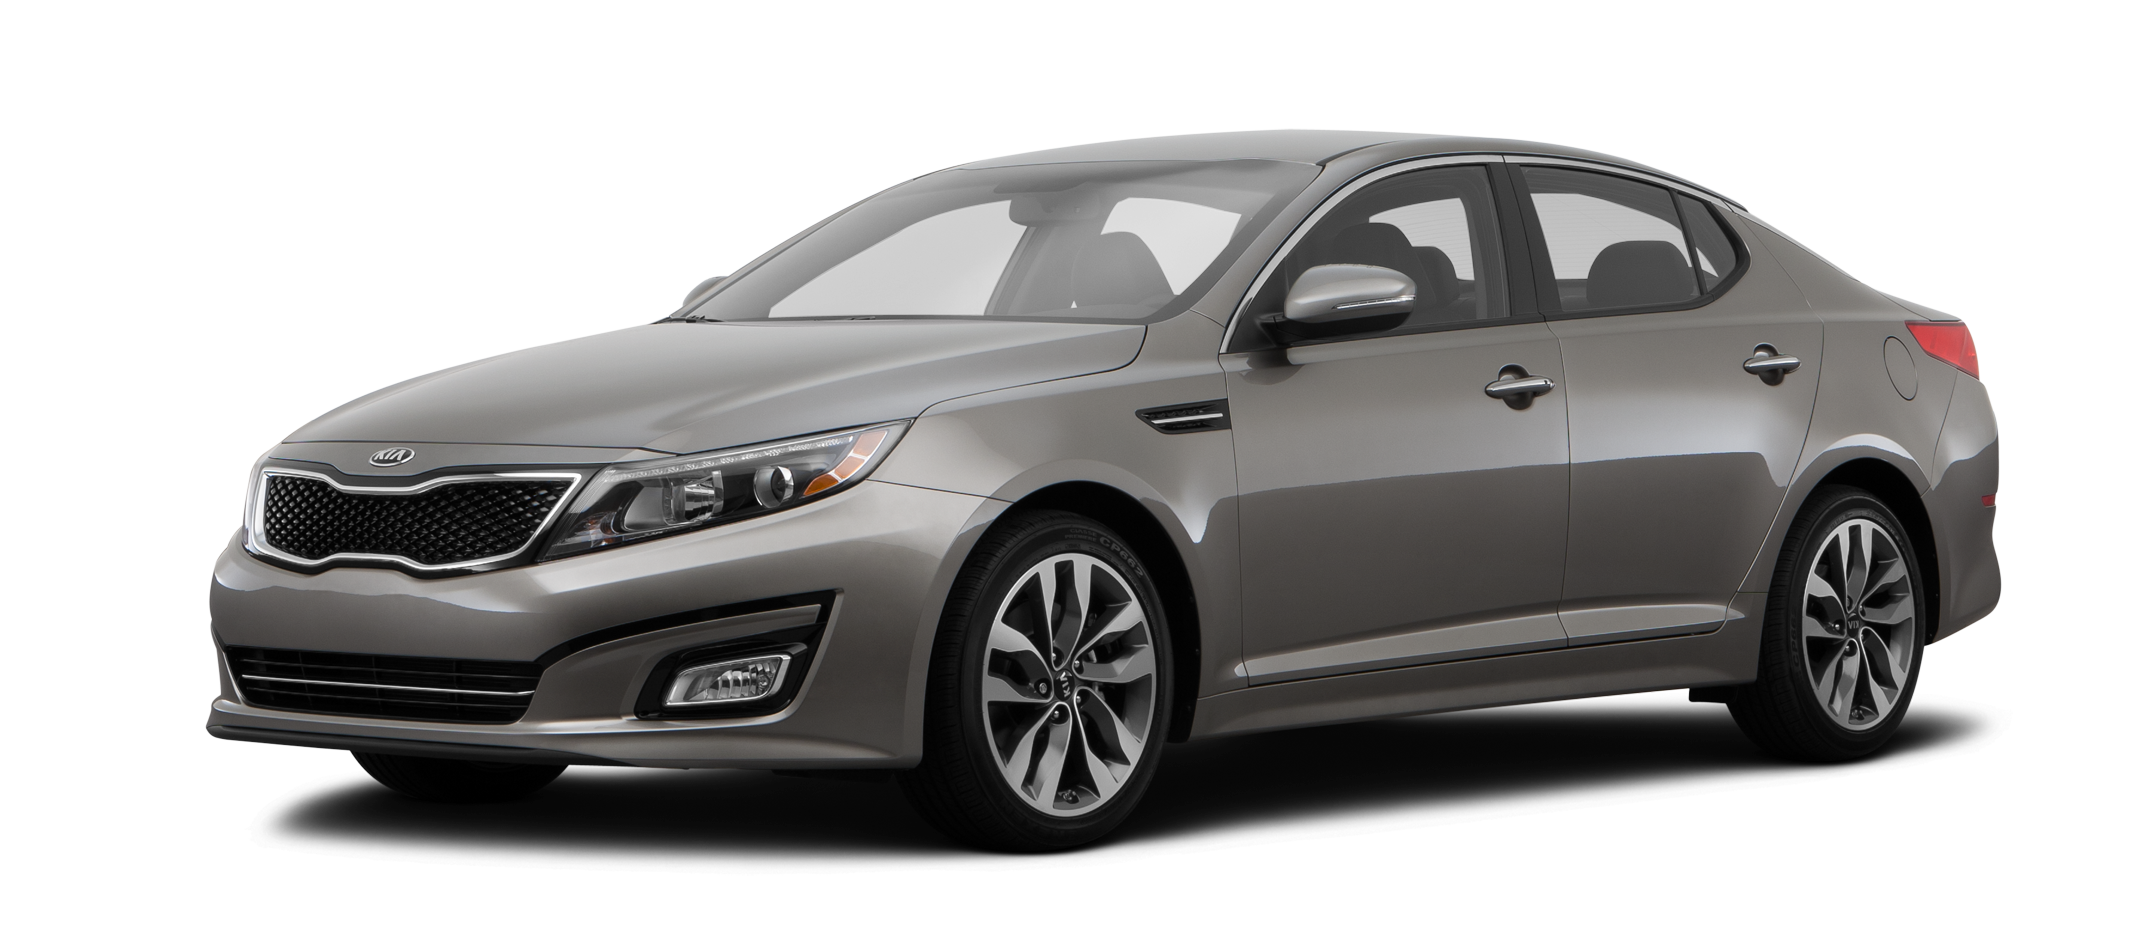 Optima Special. click here to take advantage of this offer